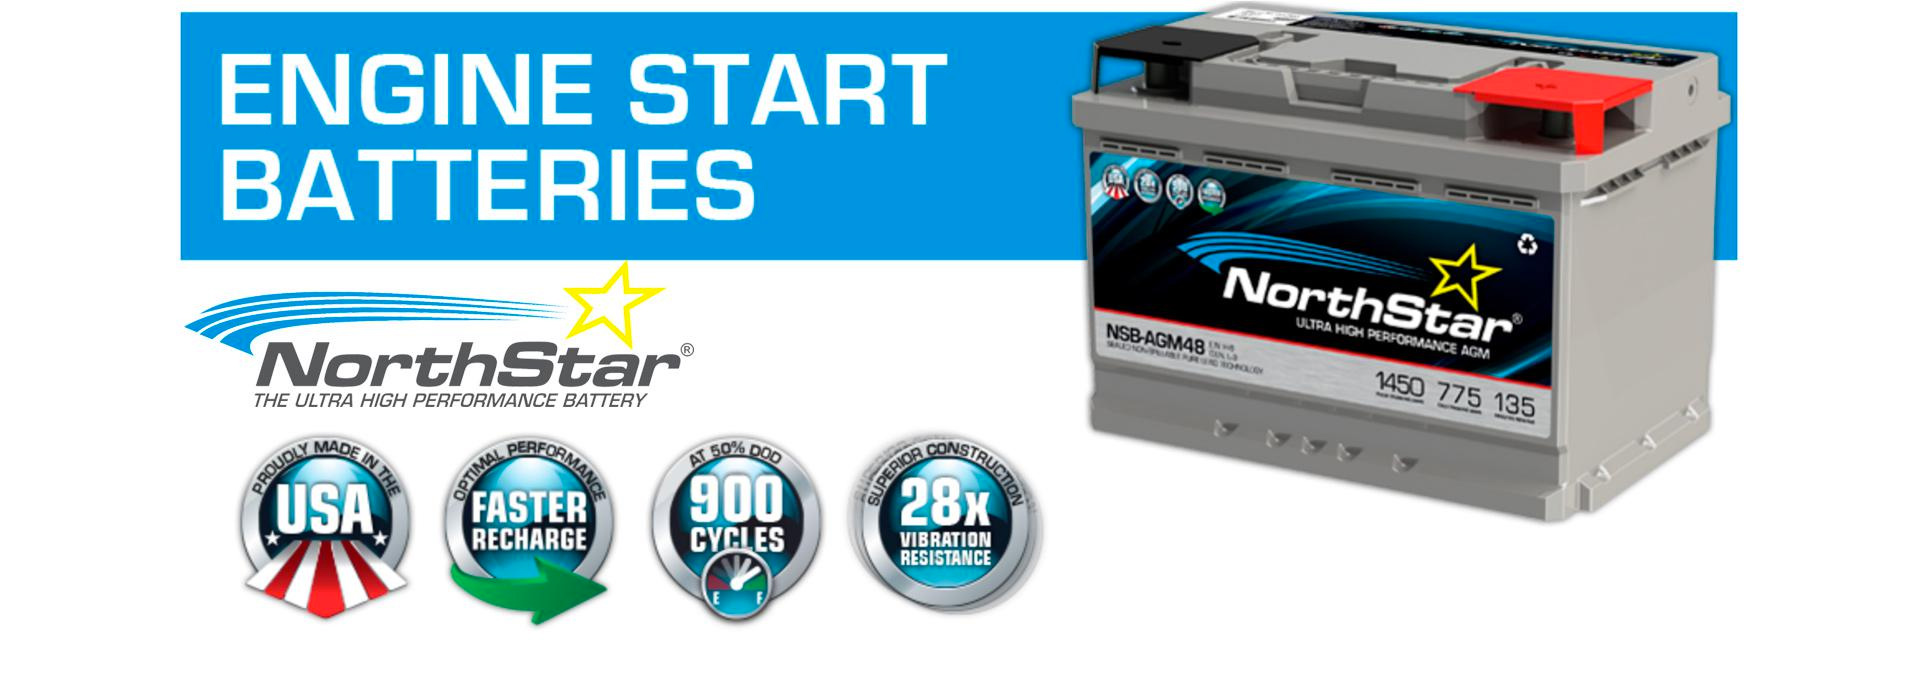 North Star Batteries